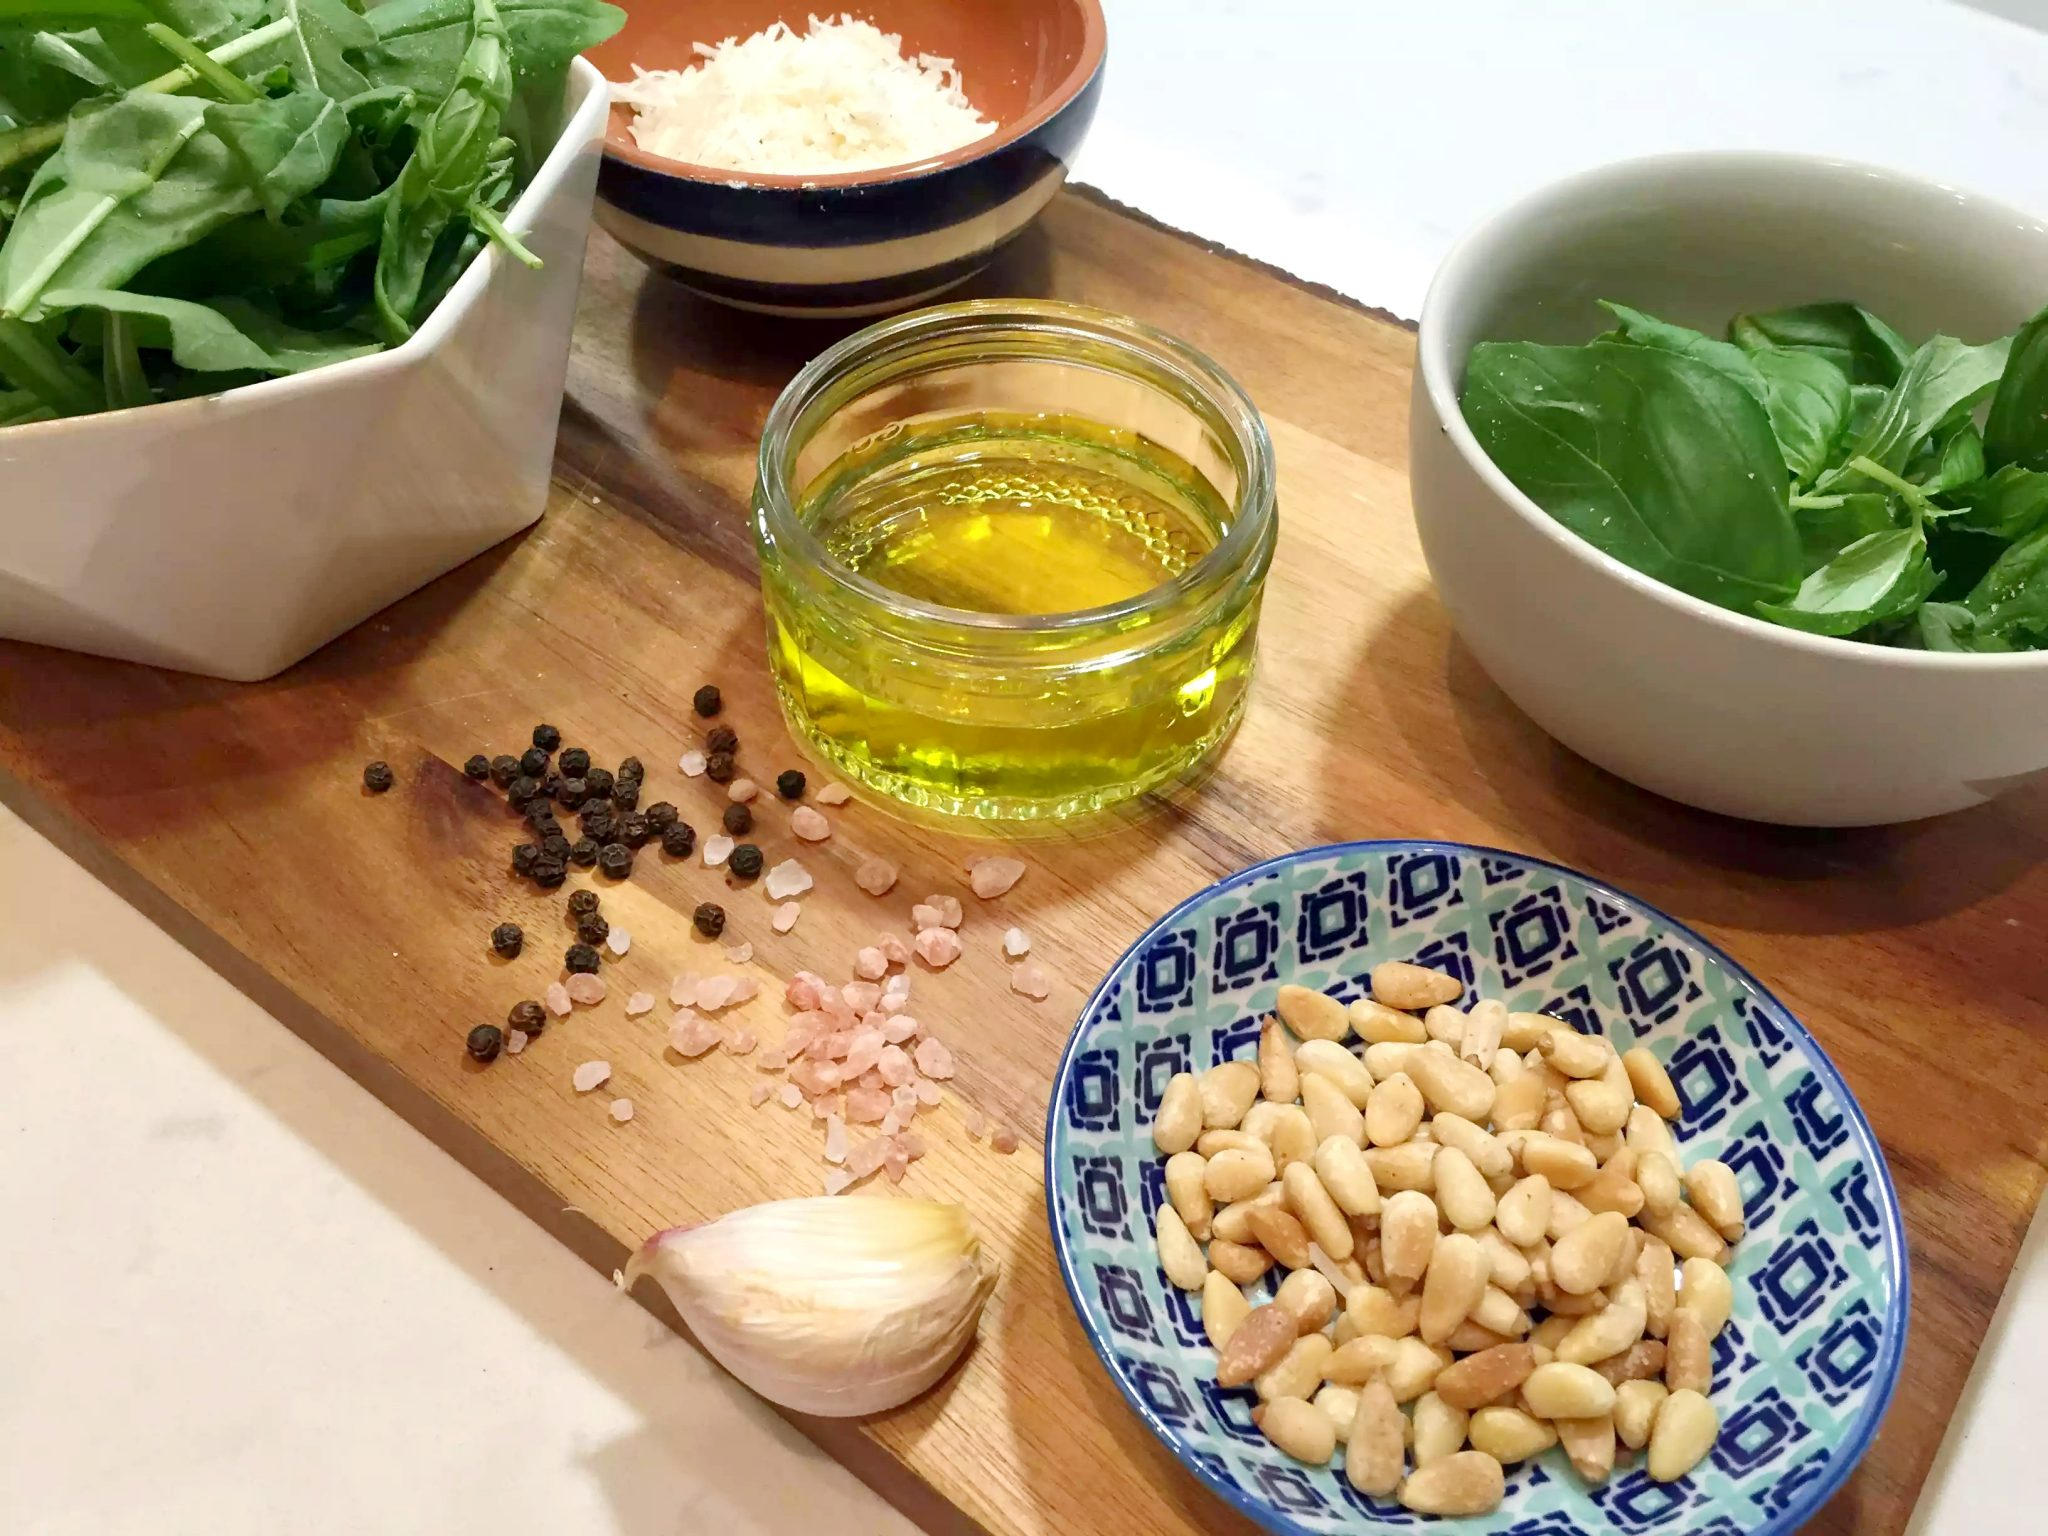 Fresh Rocket Pesto on Emma Eats & Explores - SCD, Paleo, Grain-Free, gluten-Free, Sugar-Free, Vegetarian